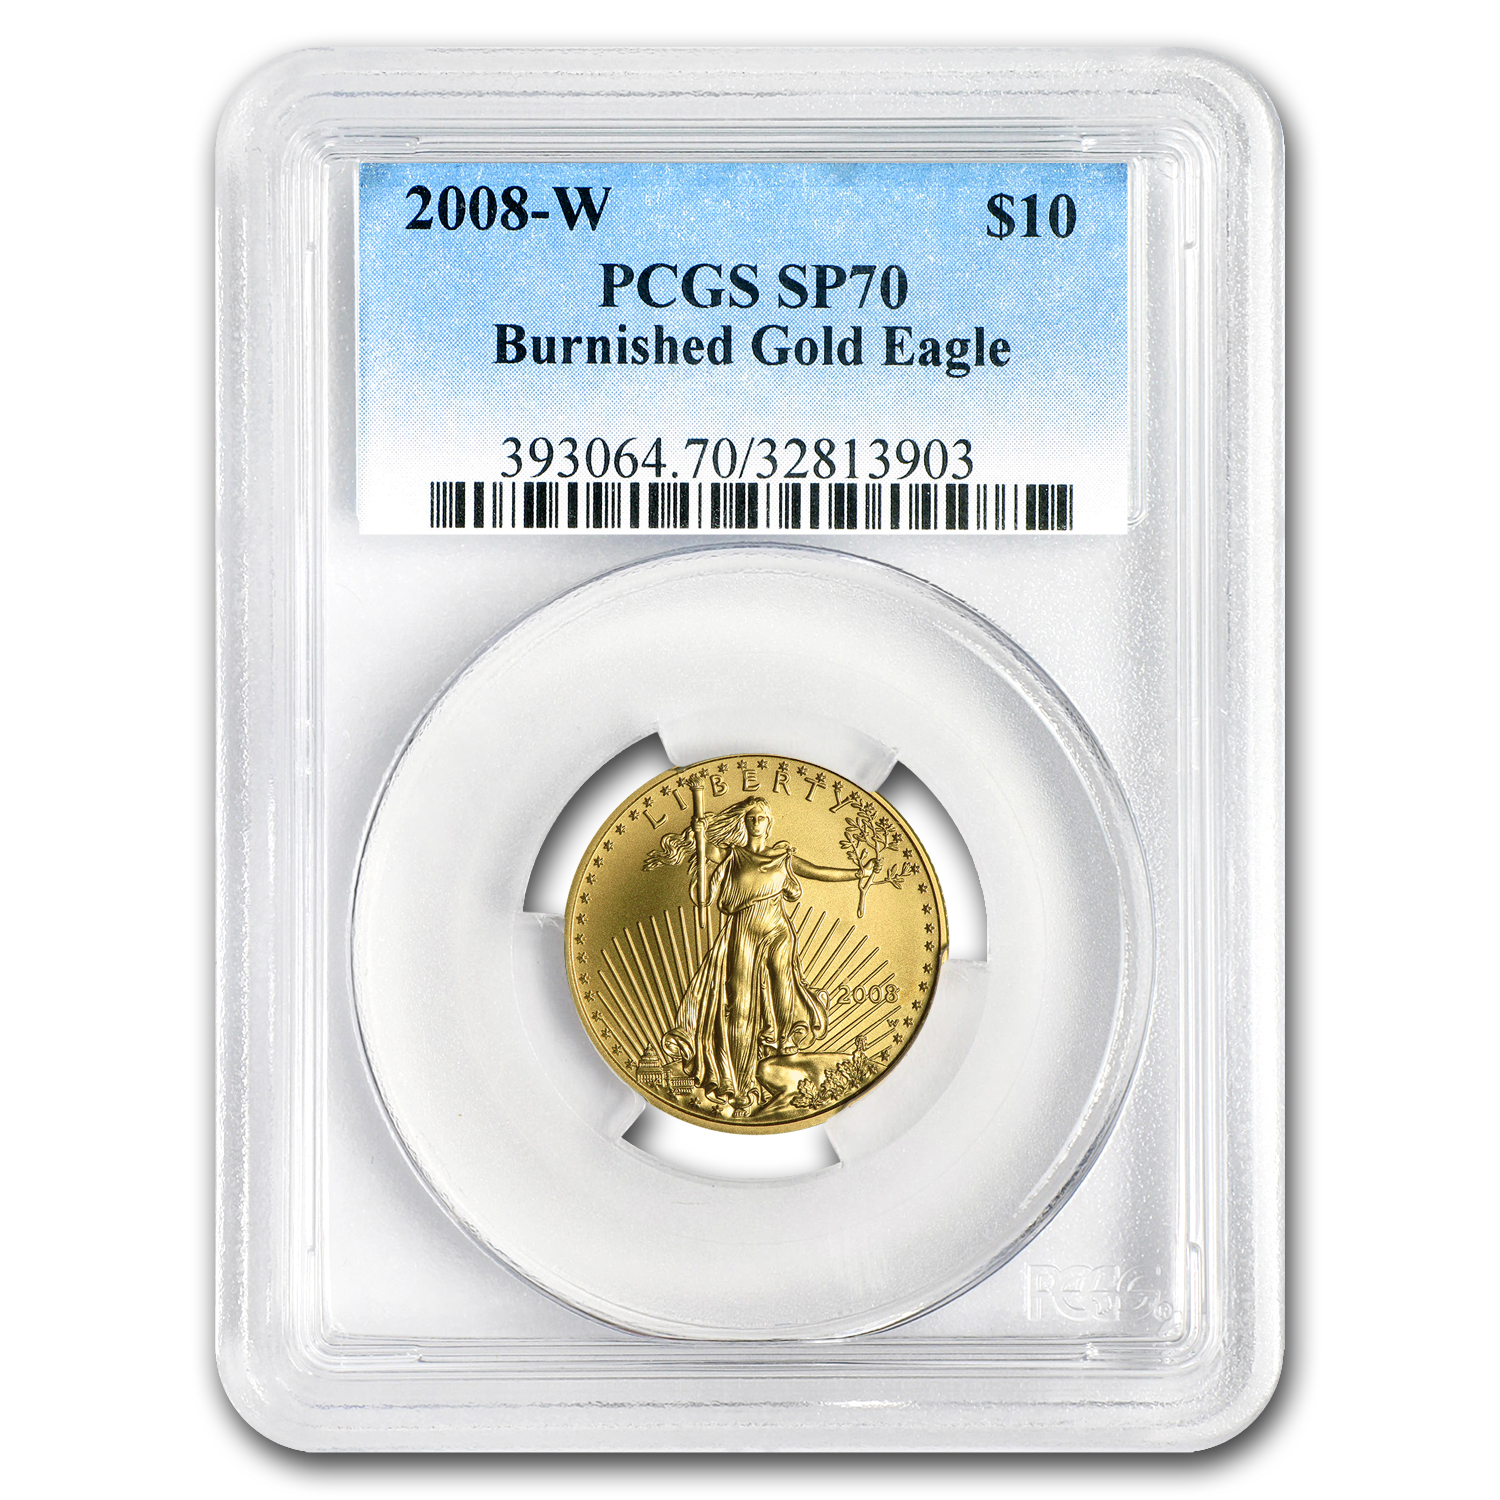 2008-W 1/4 oz Burnished Gold American Eagle MS/SP-70 PCGS